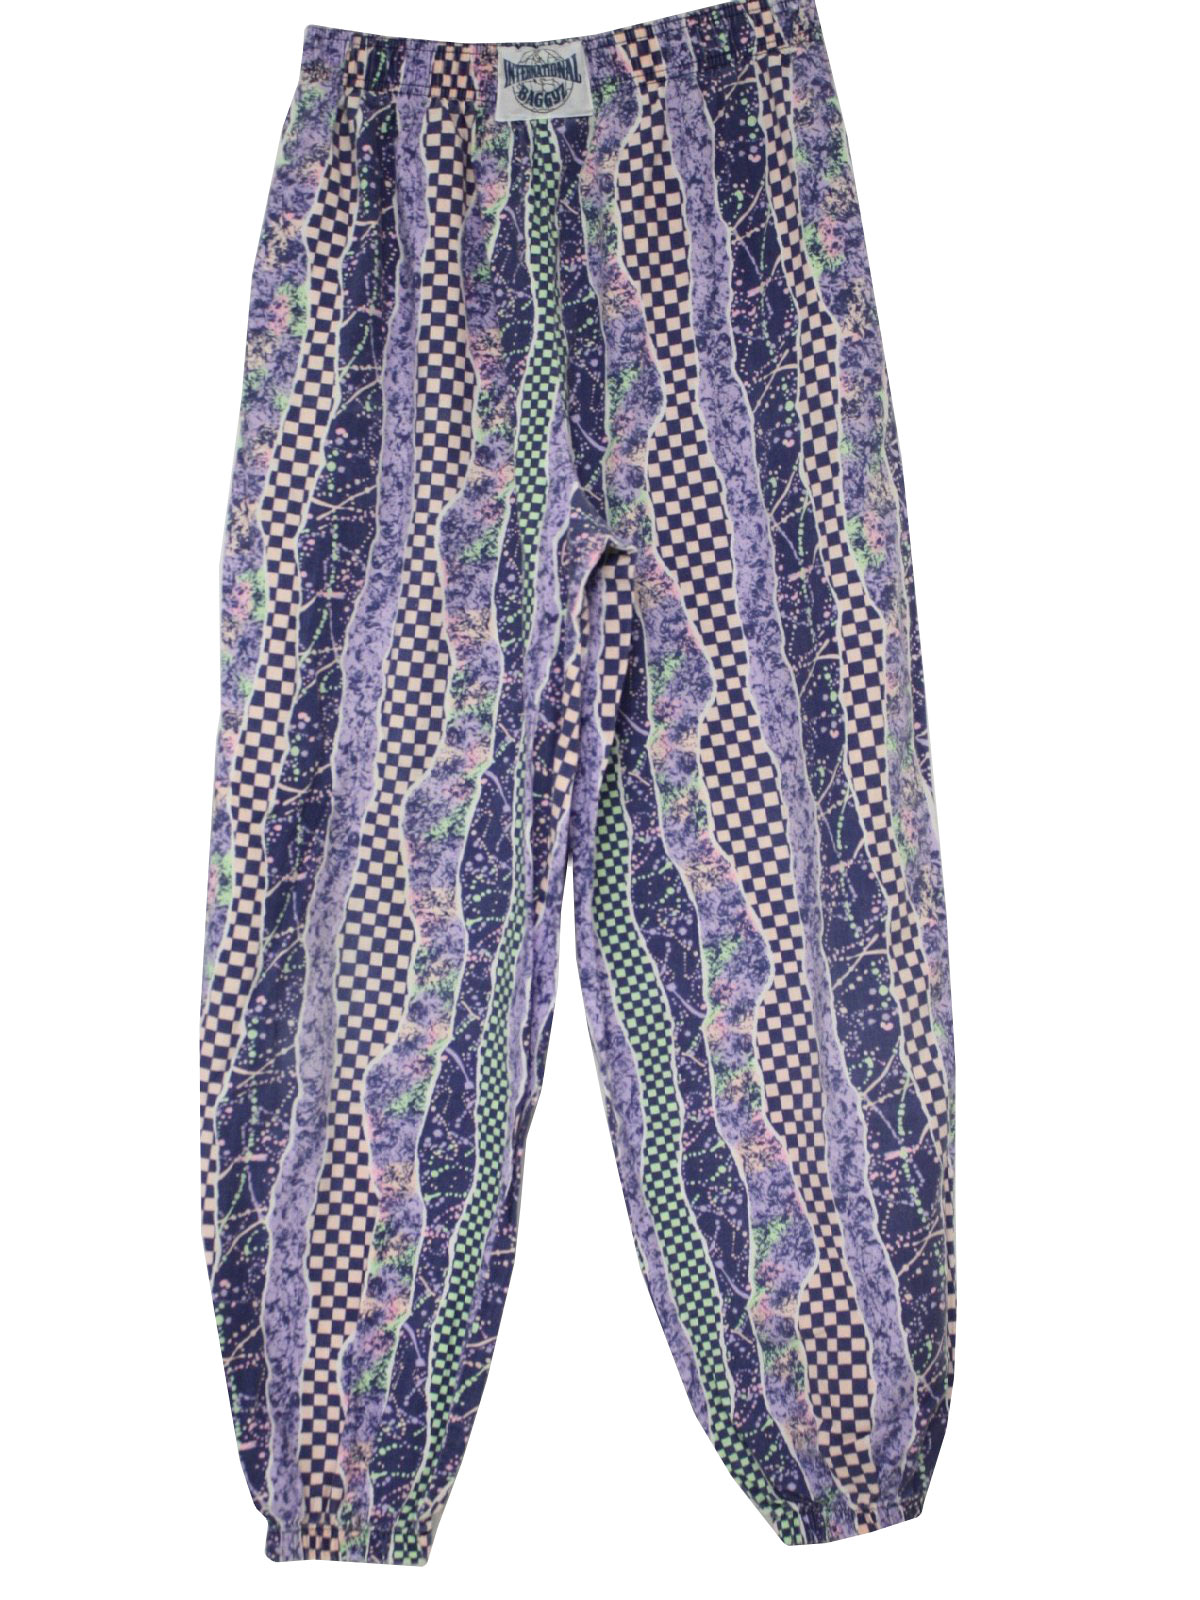 1980s Vintage Pants 80s International Baggyz Mens